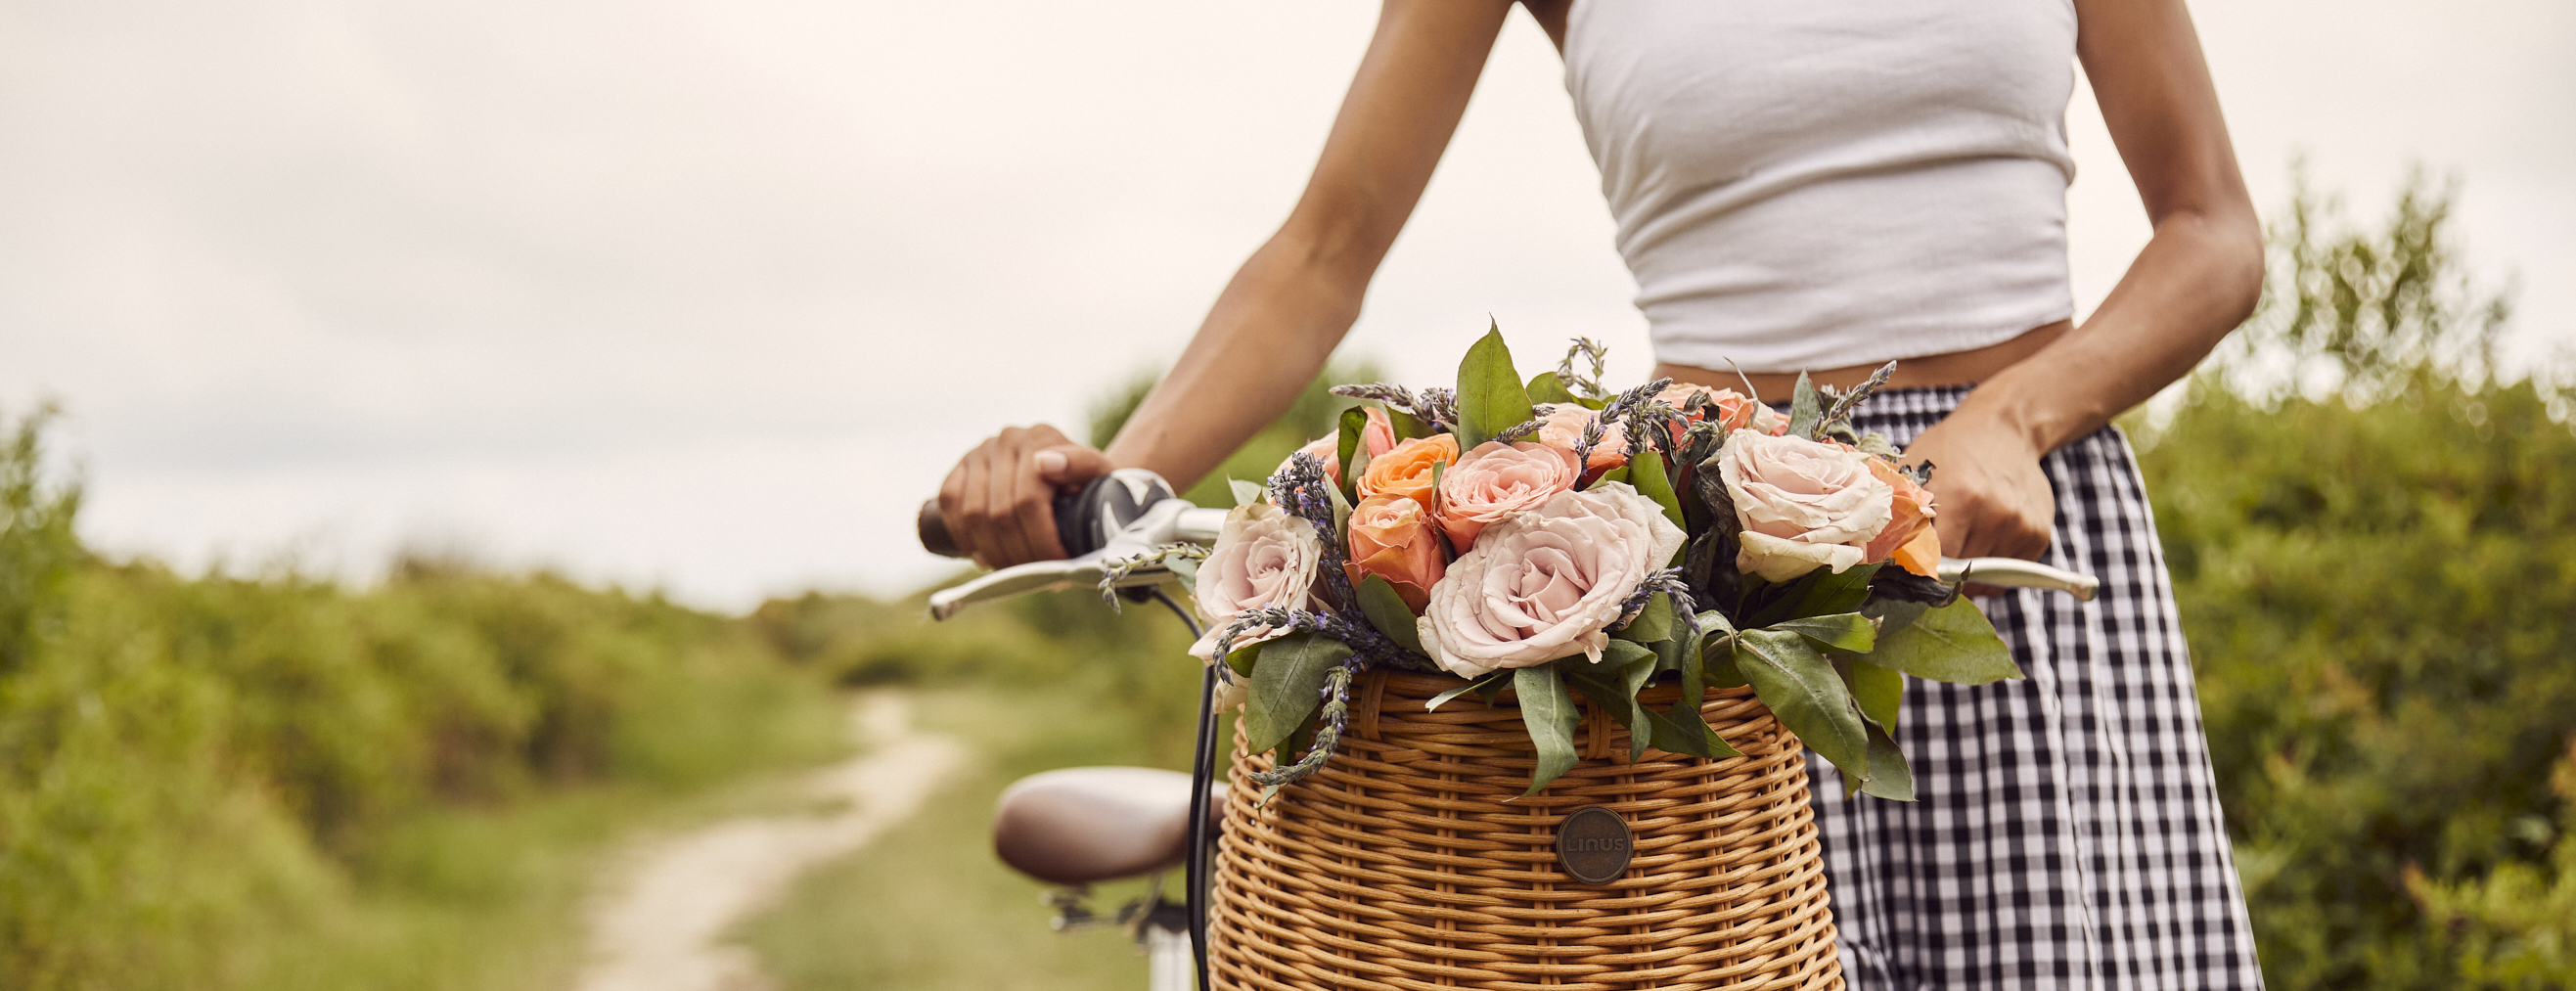 Woman walking a bicycle with a basket full of flowers with a cottagecore aesthetic.